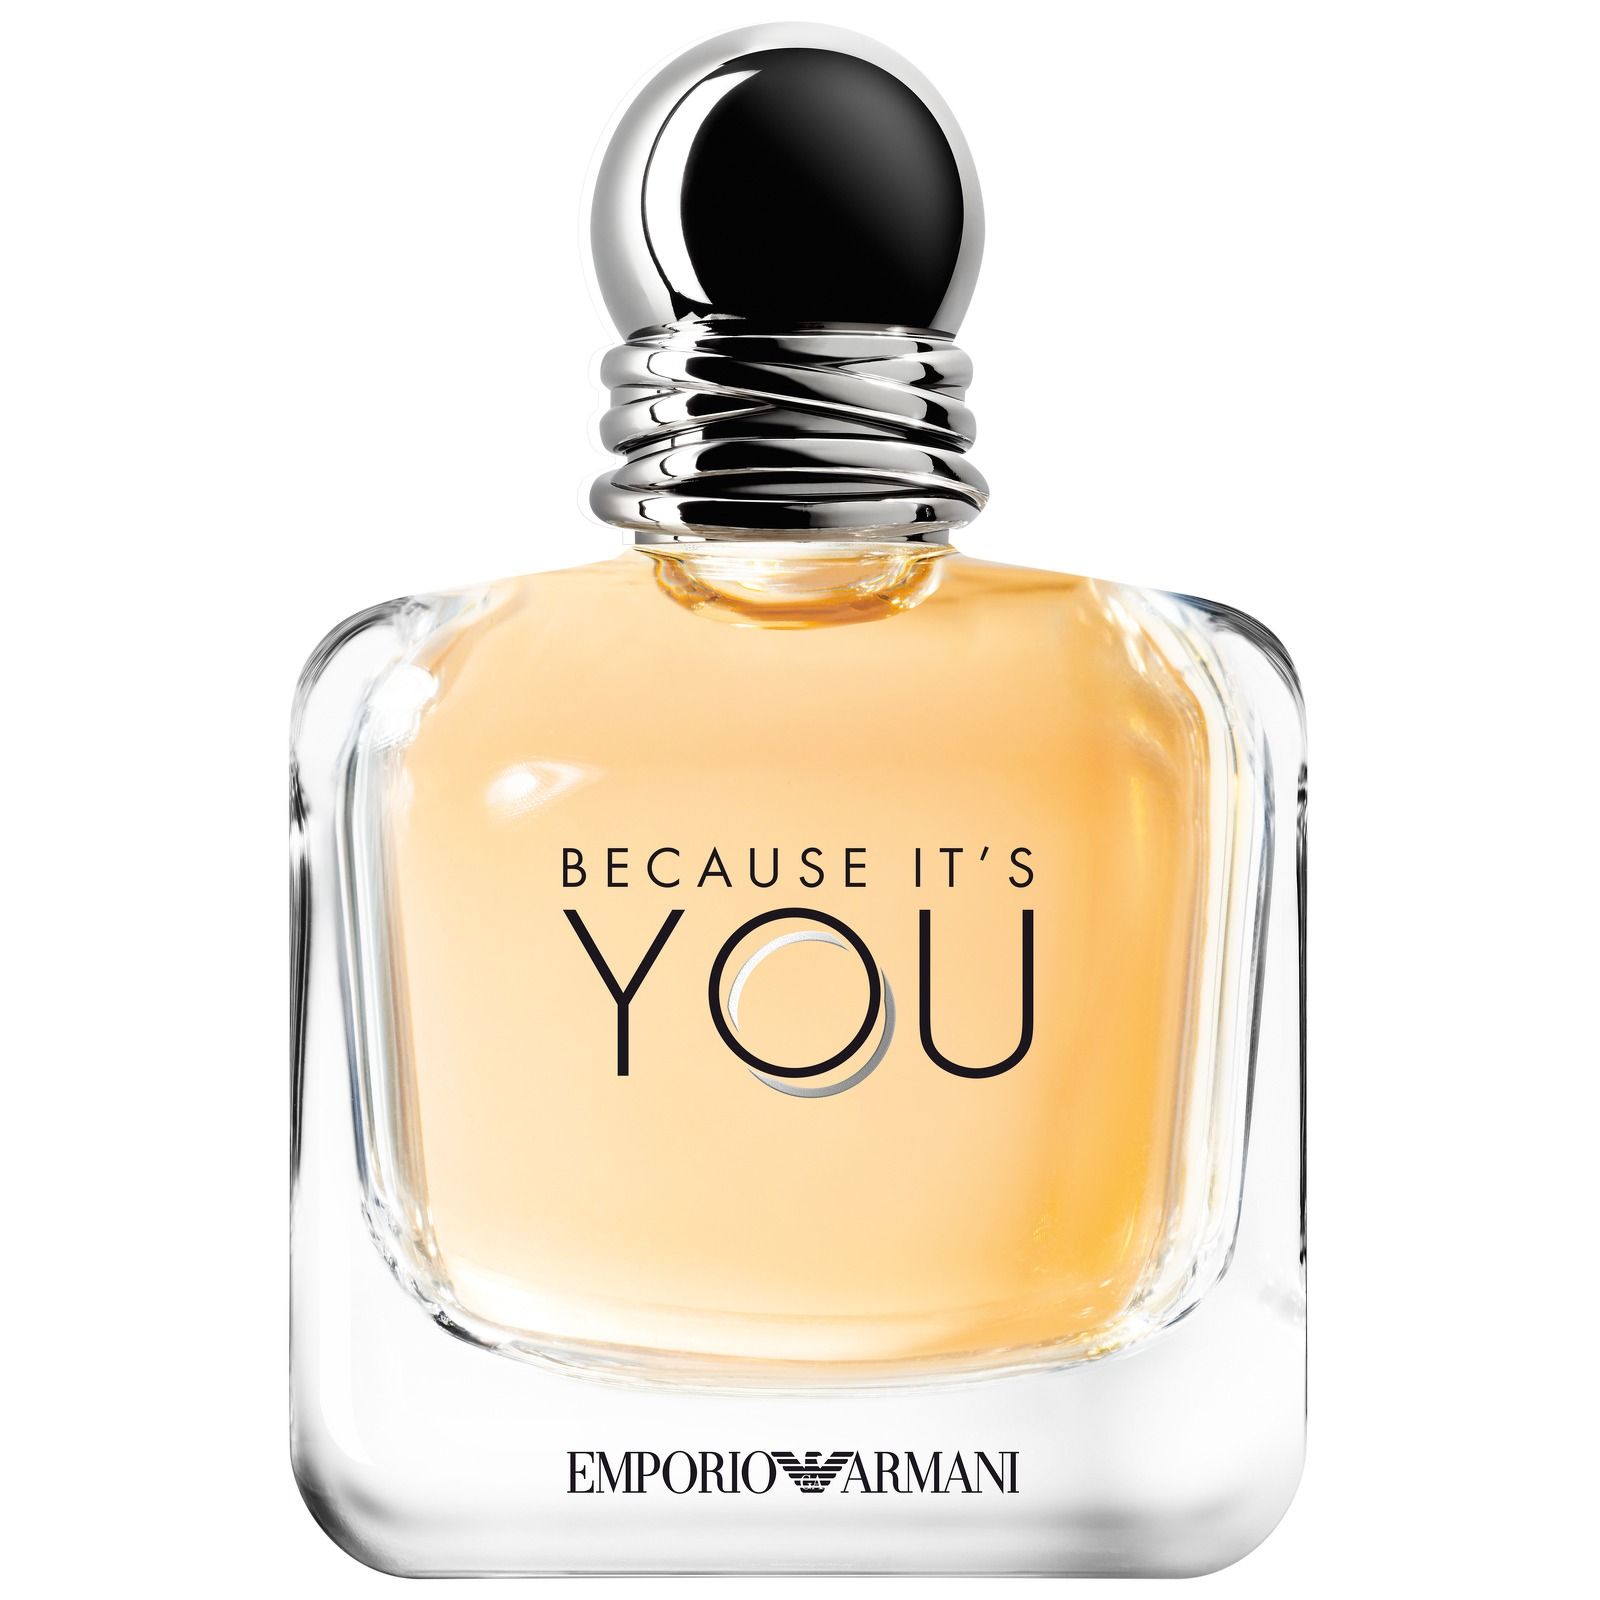 Emporio Armani Because Its You Eau De Parfum Spray 100ml Perfume